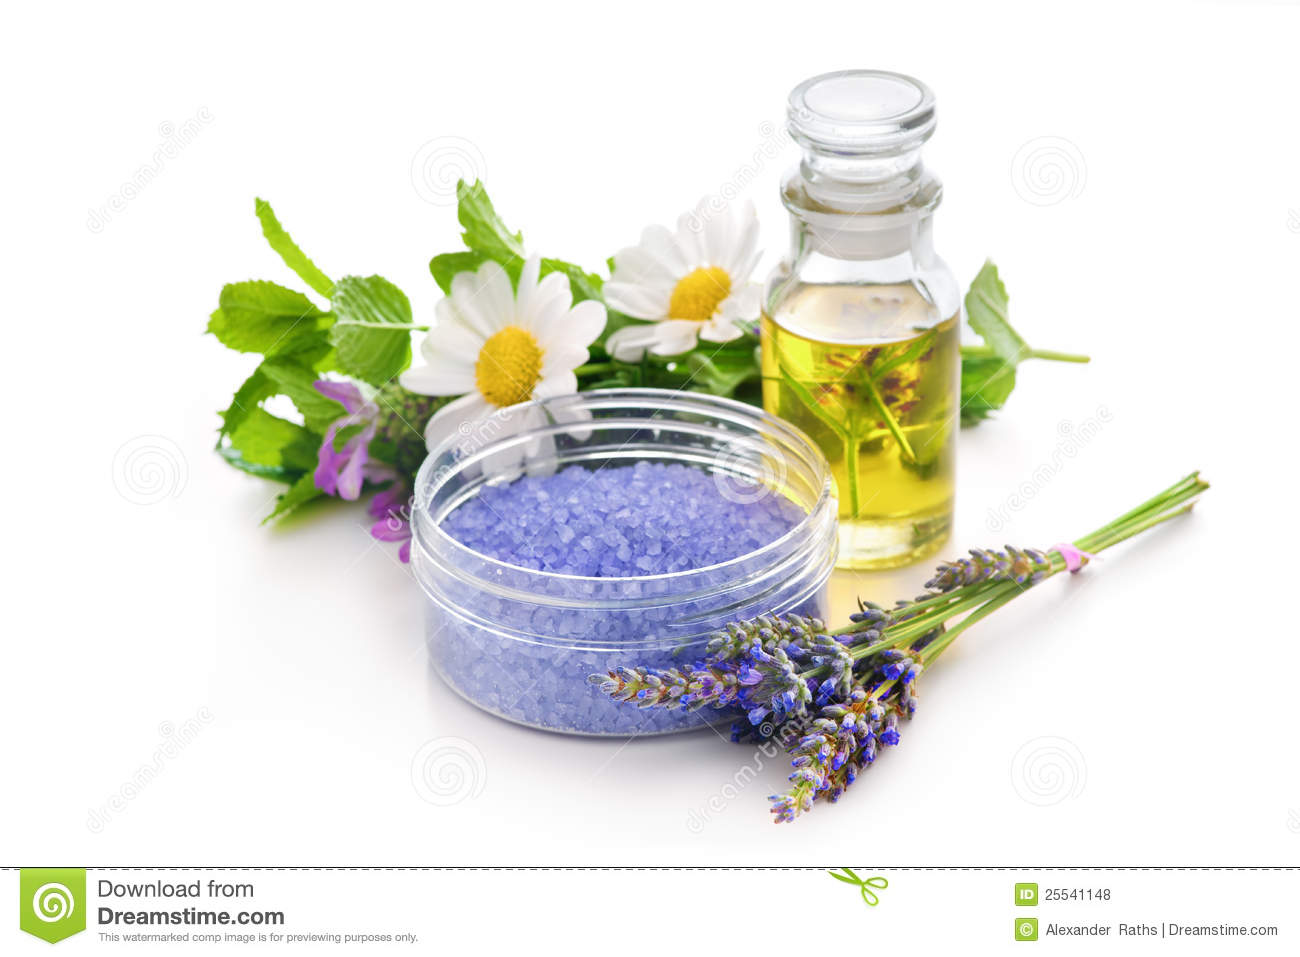 herbal spa & massage review happy ending Queensland/New South Wales